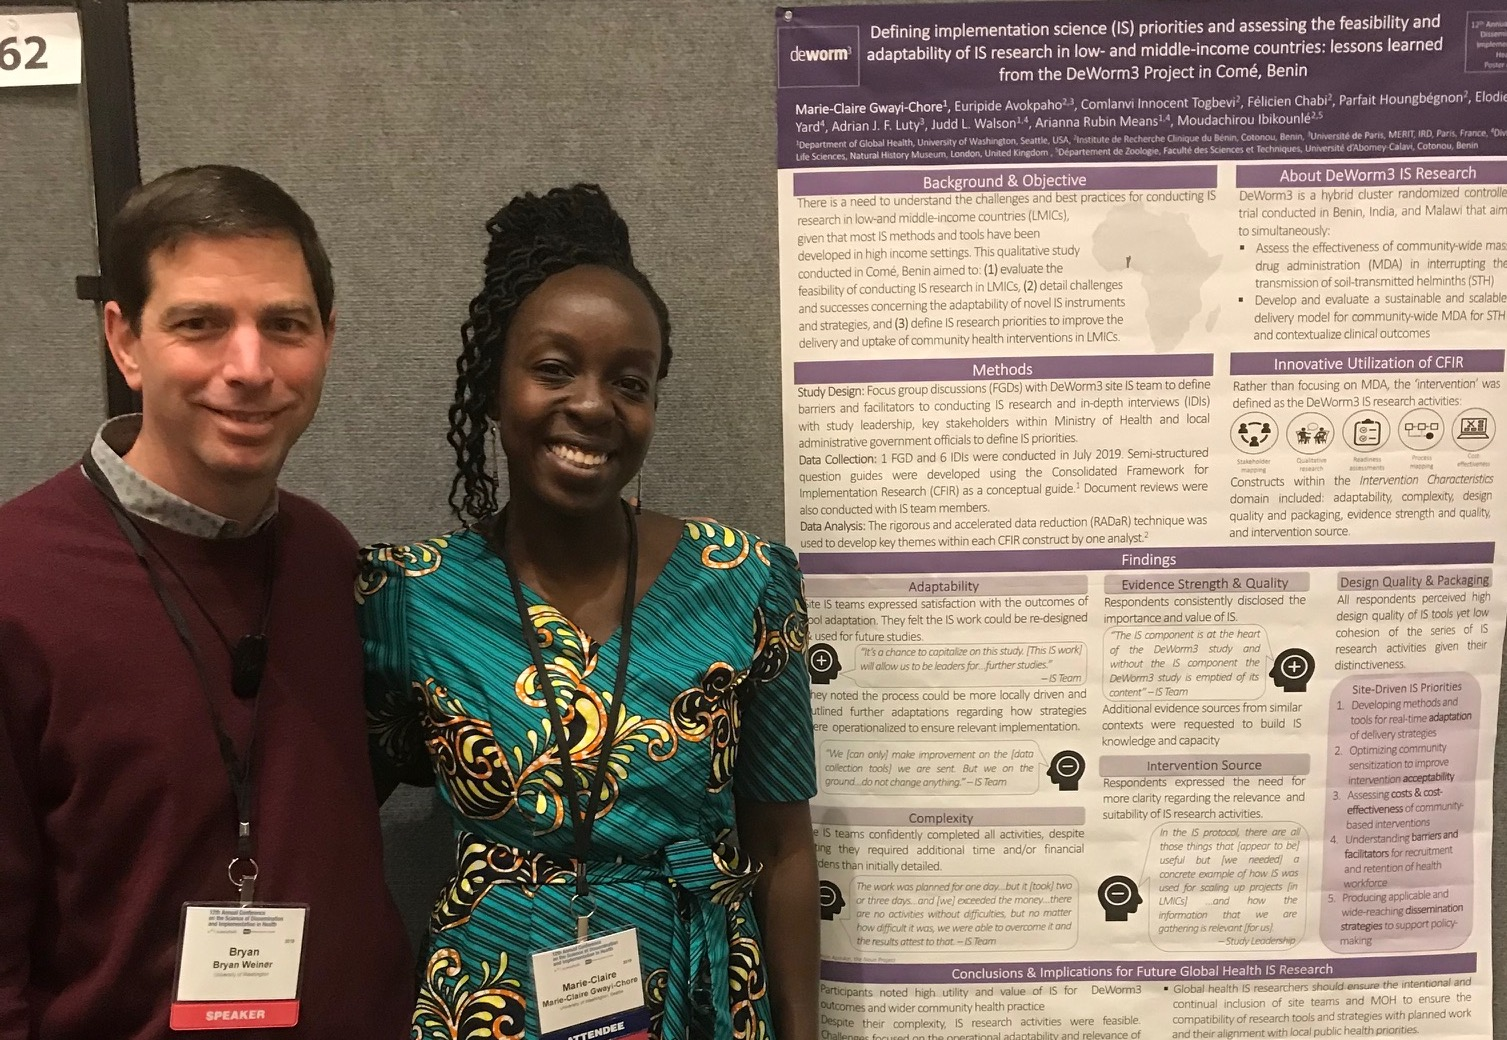 Bryan Weiner and Claire Gwayi-Chore standing in front of scientific poster at 2019 D&I Conference